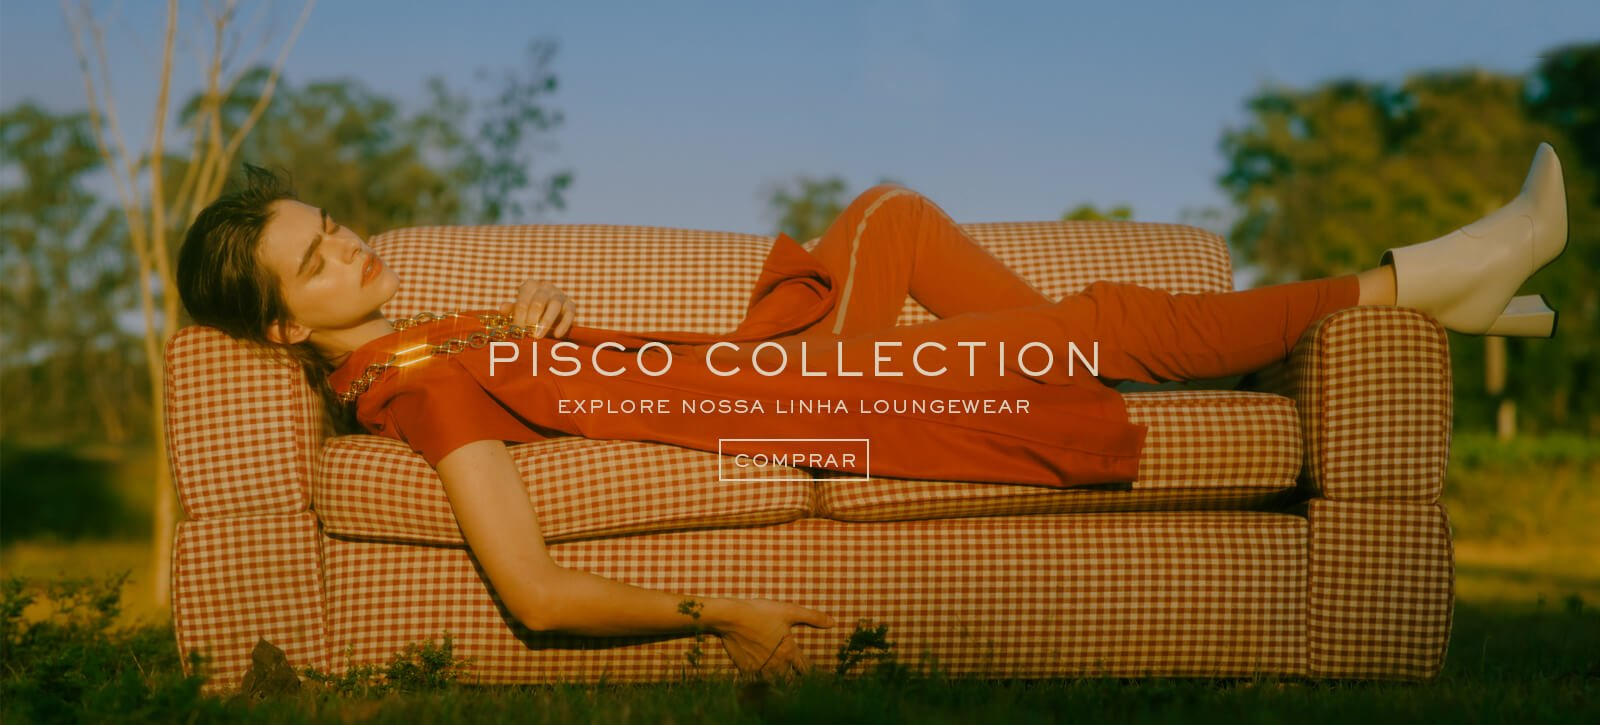 PISCO COLLECTION